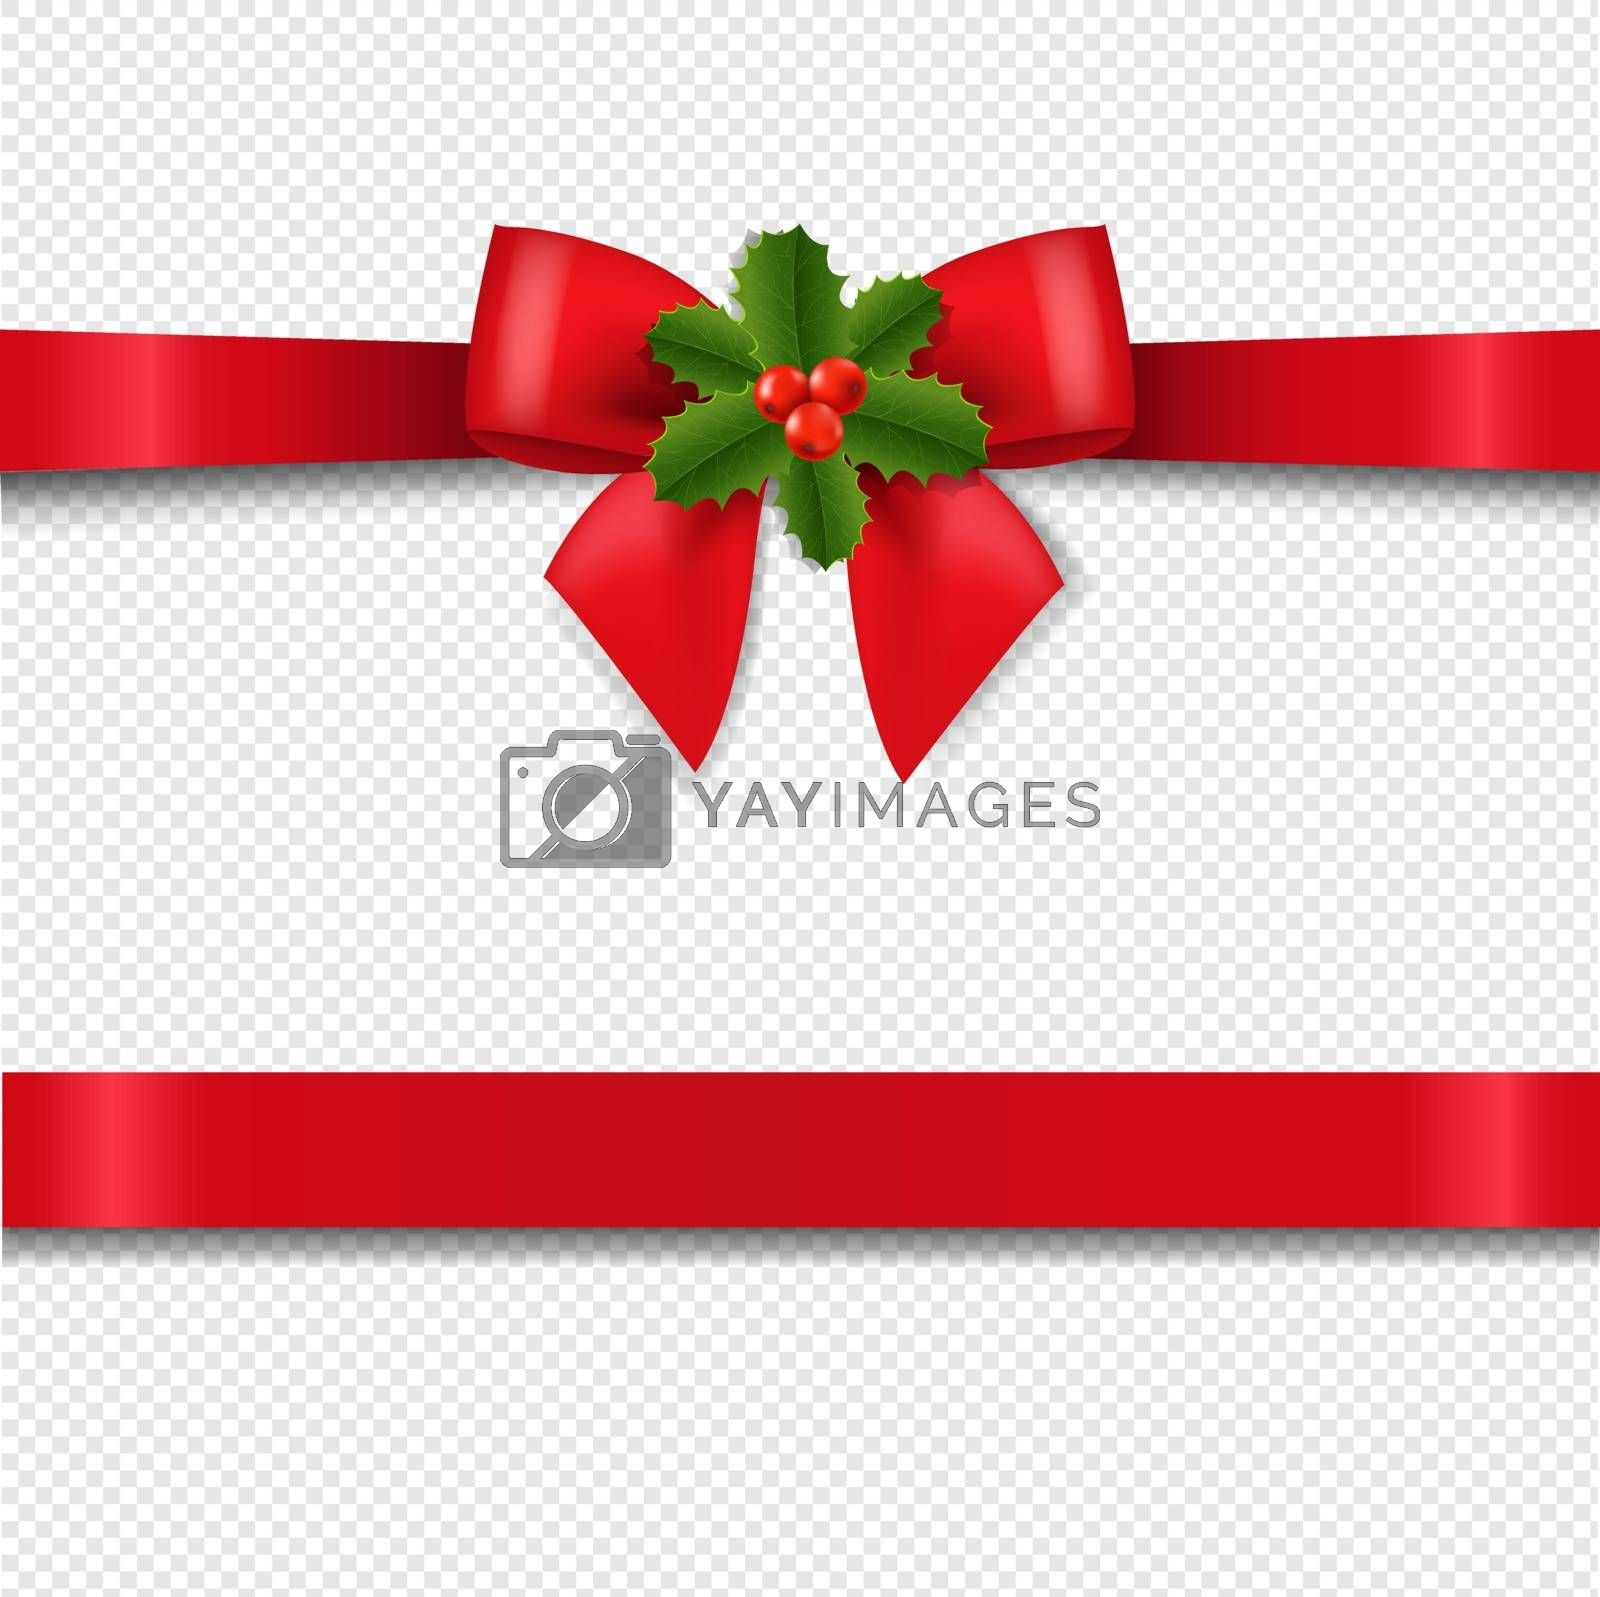 Red Bow With Holly Berry Isolated Transparent Background With Gradient Mesh, Vector Illustration